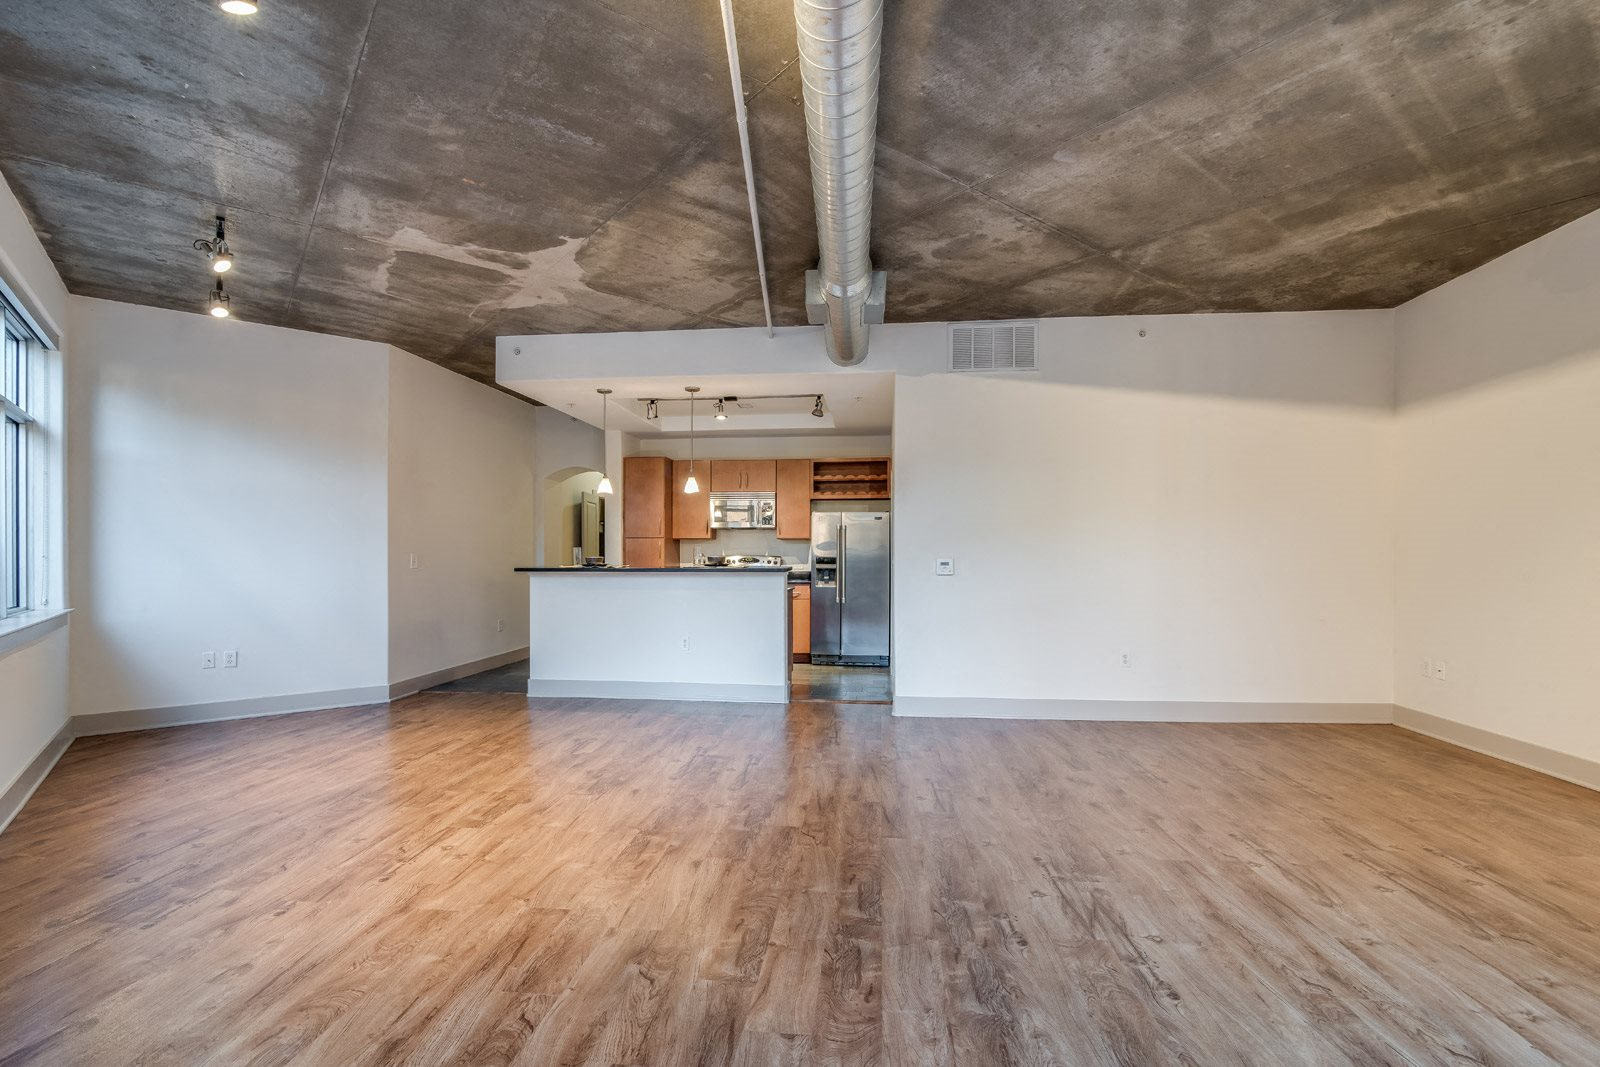 Hardwood Flooring and Exposed Concrete Ceilings at Crescent at Fells Point by Windsor, 951 Fell Street, Baltimore